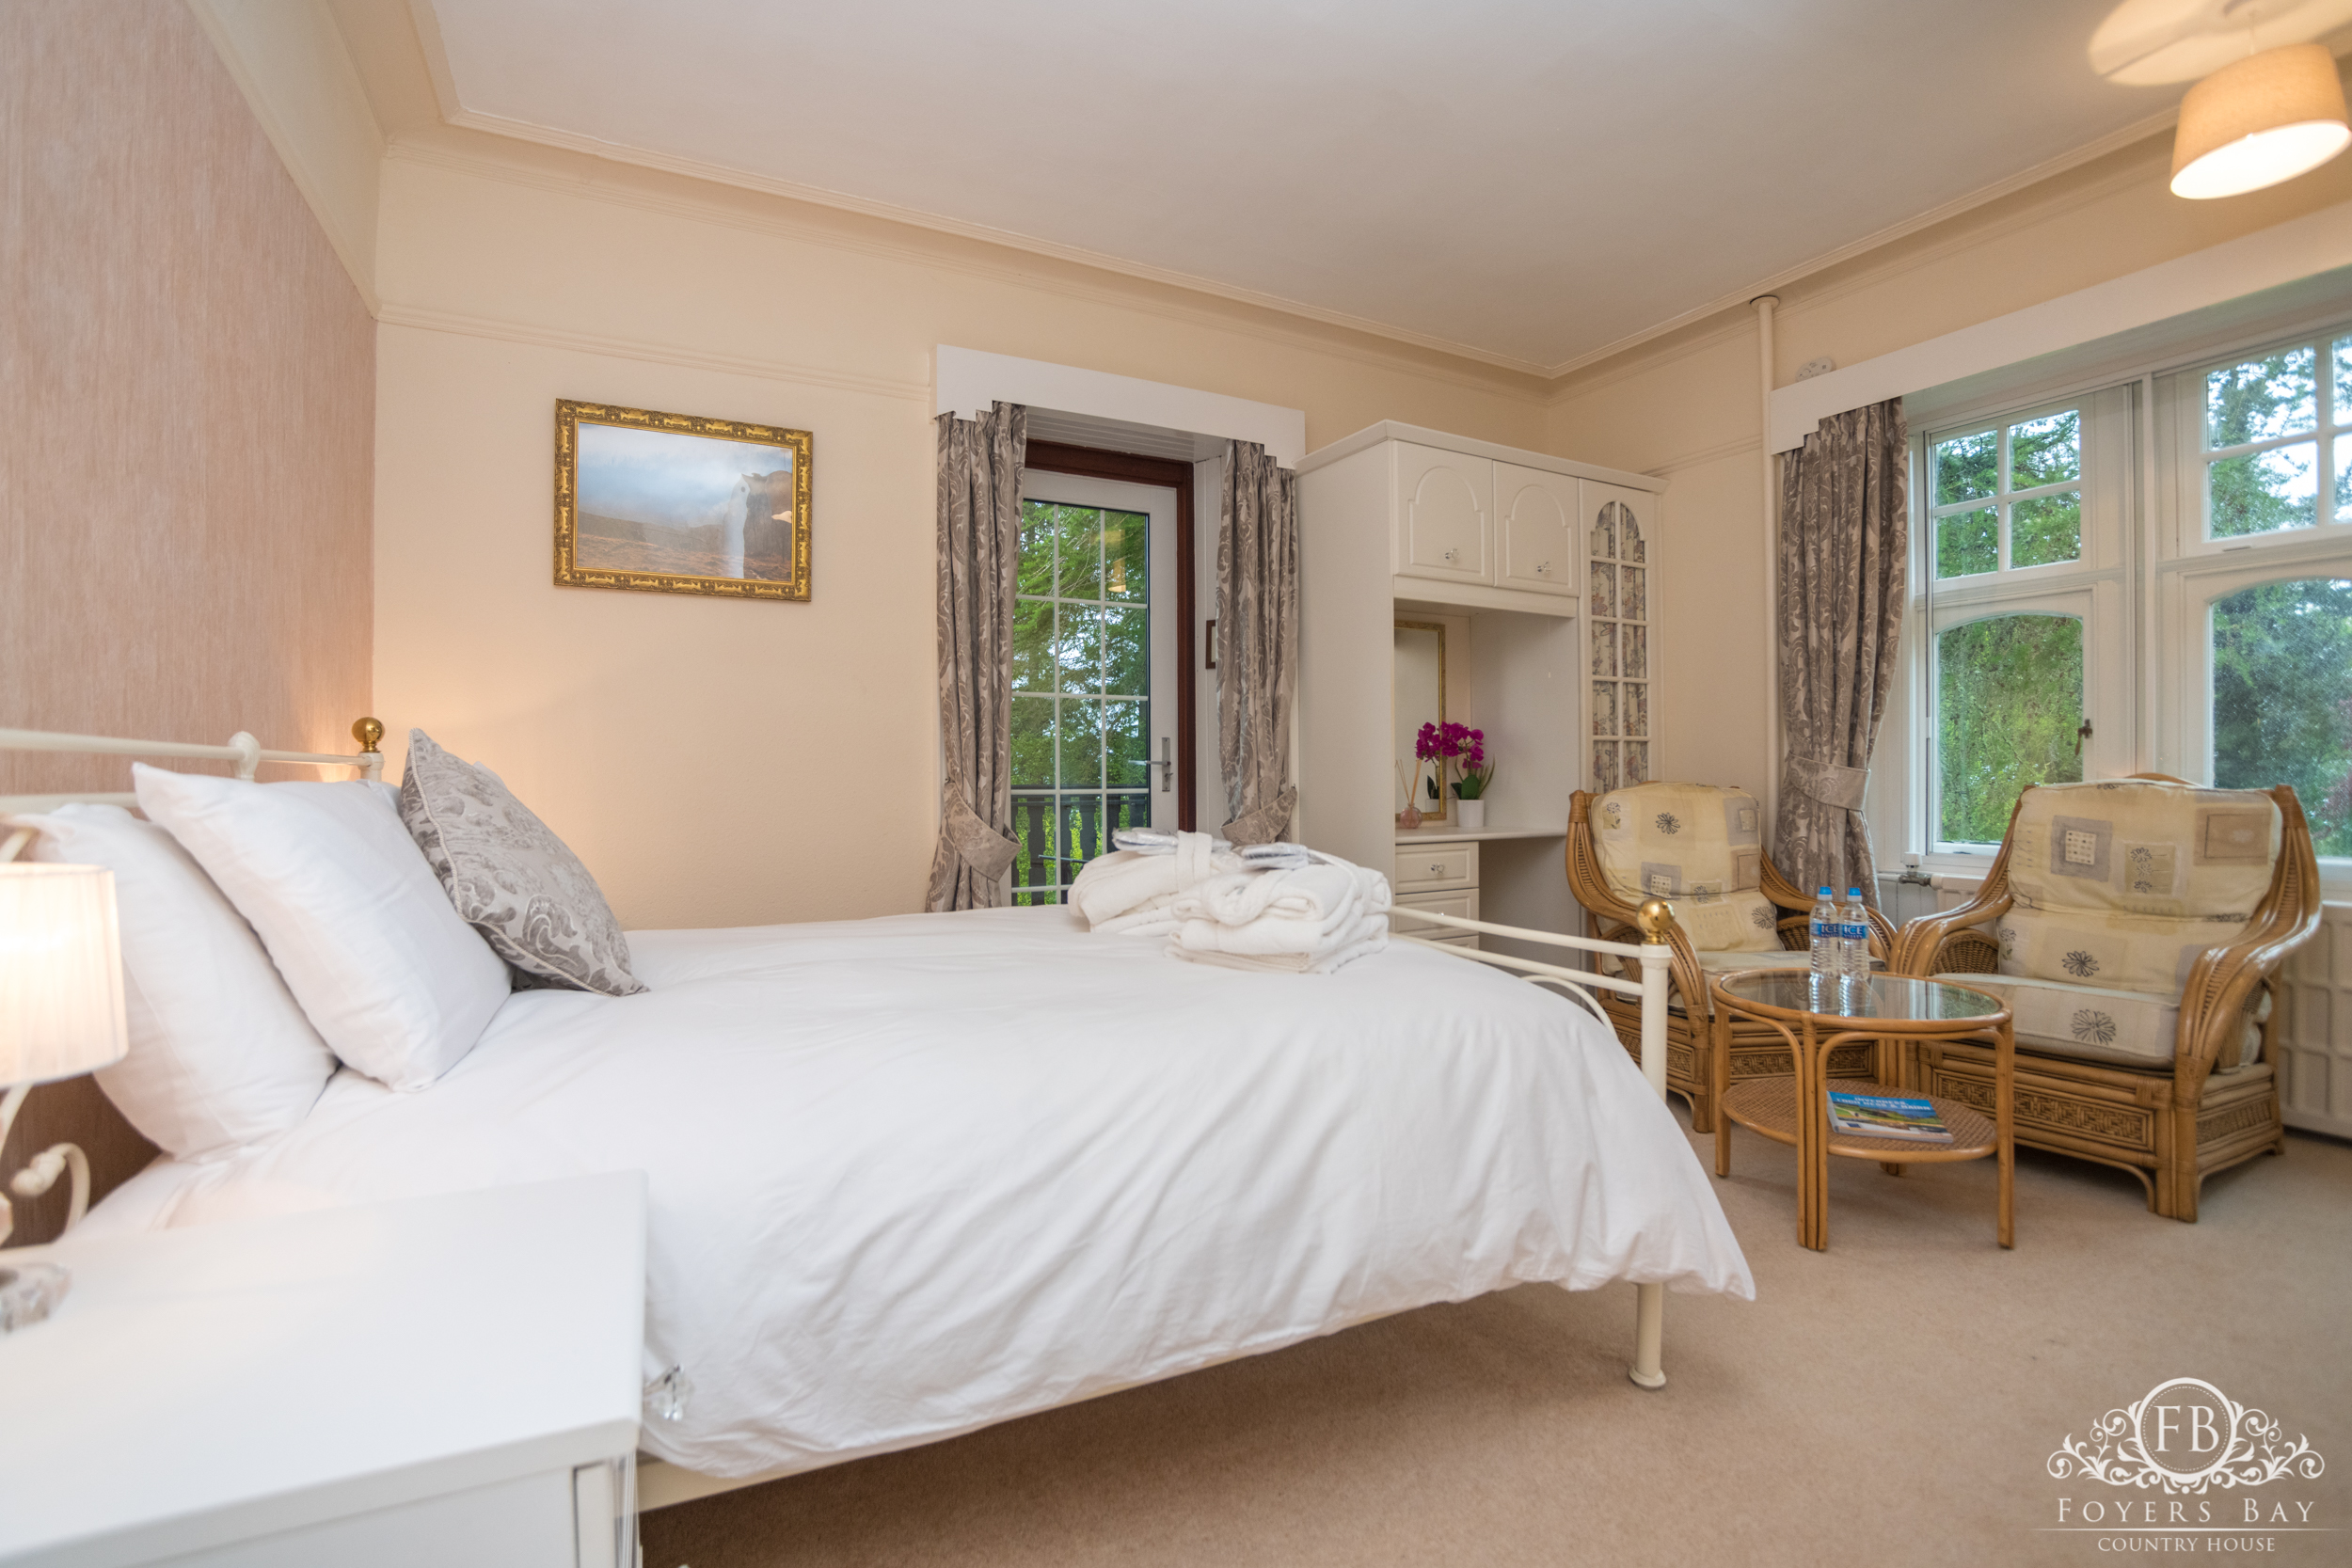 Room 2 - King Room with Balcony and Loch Views